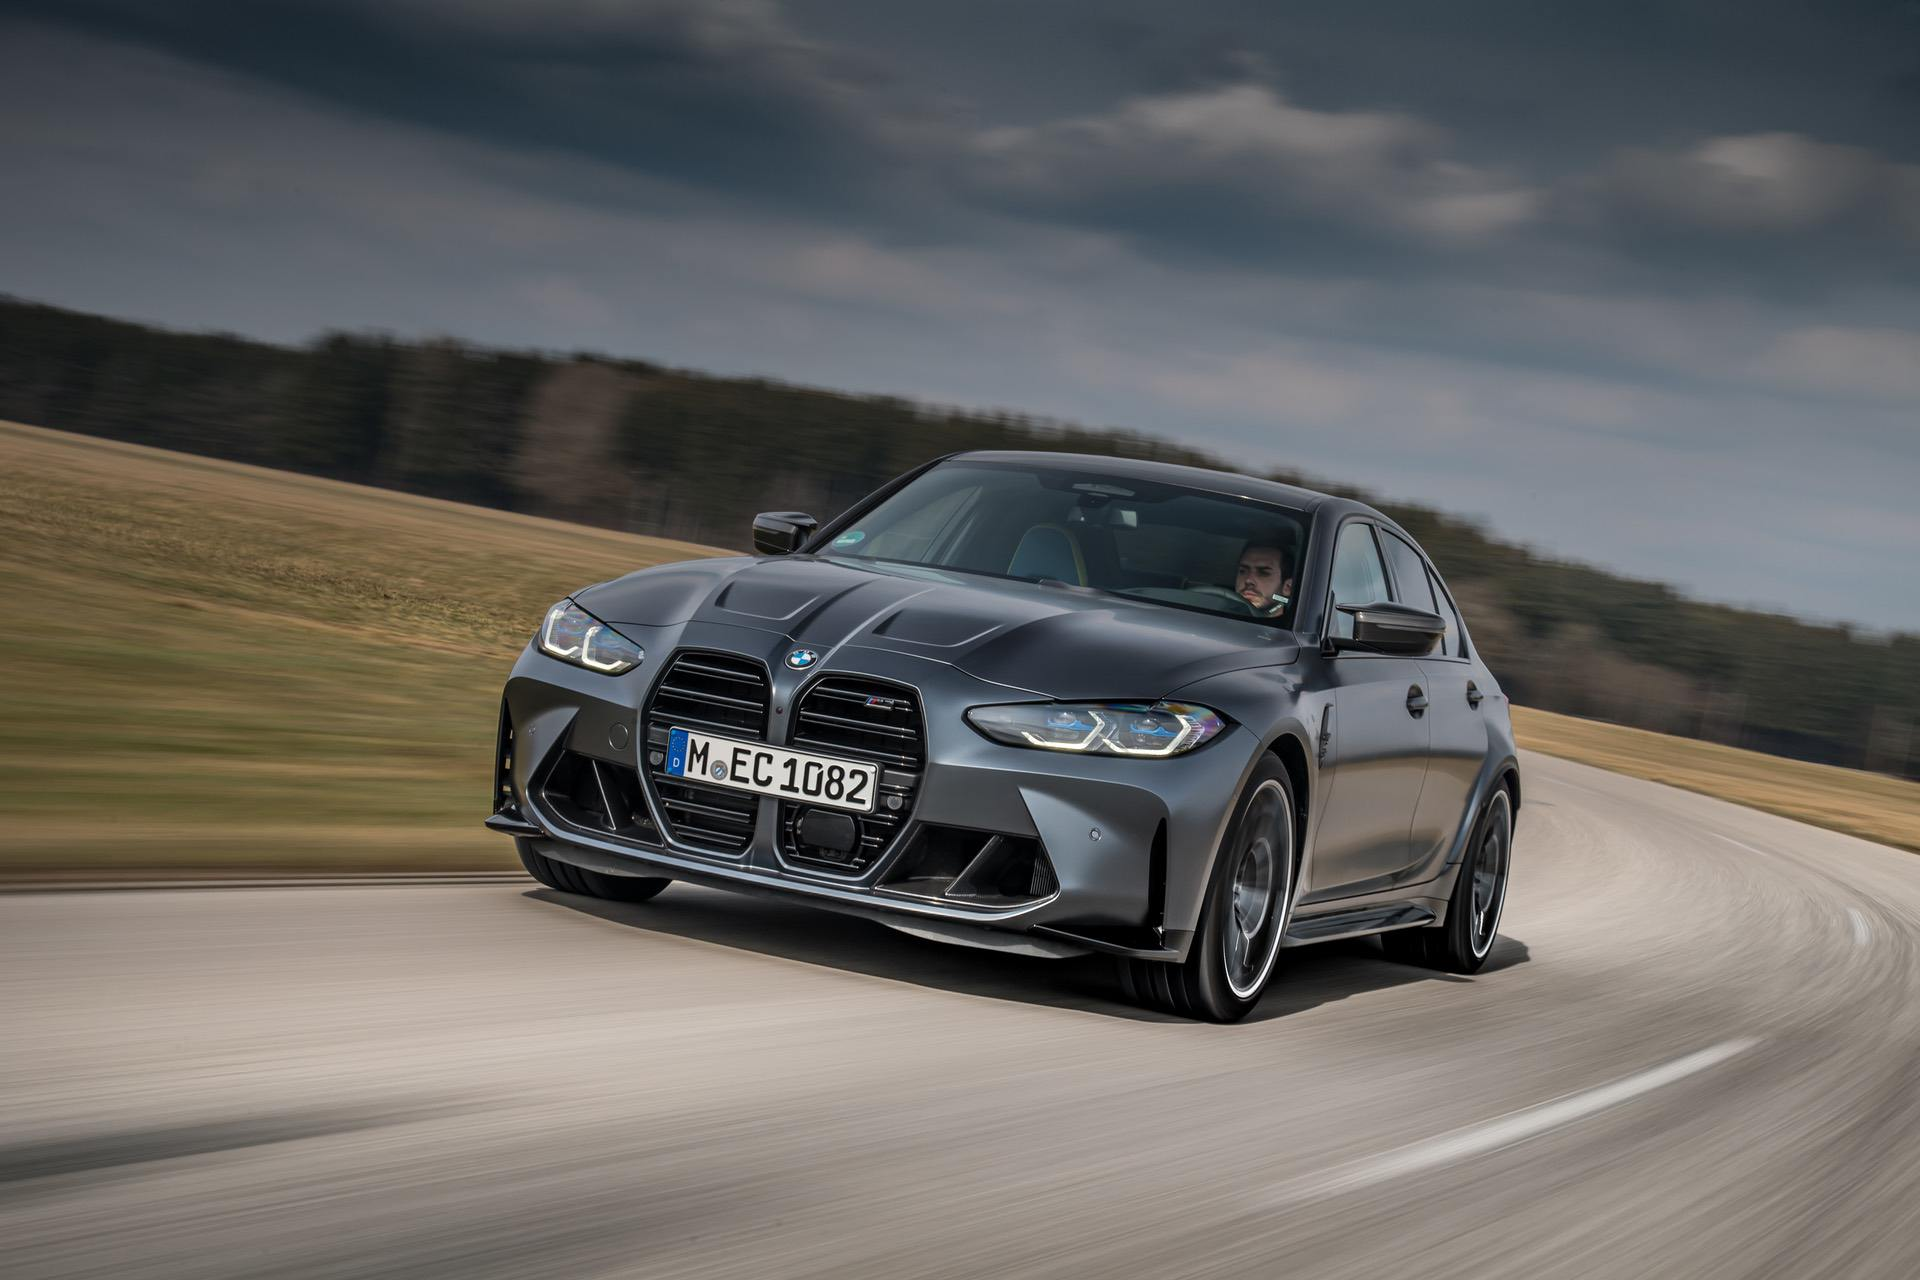 VIDEO: See AutoTopNL's Zanzibar BMW M3 Manual in Action